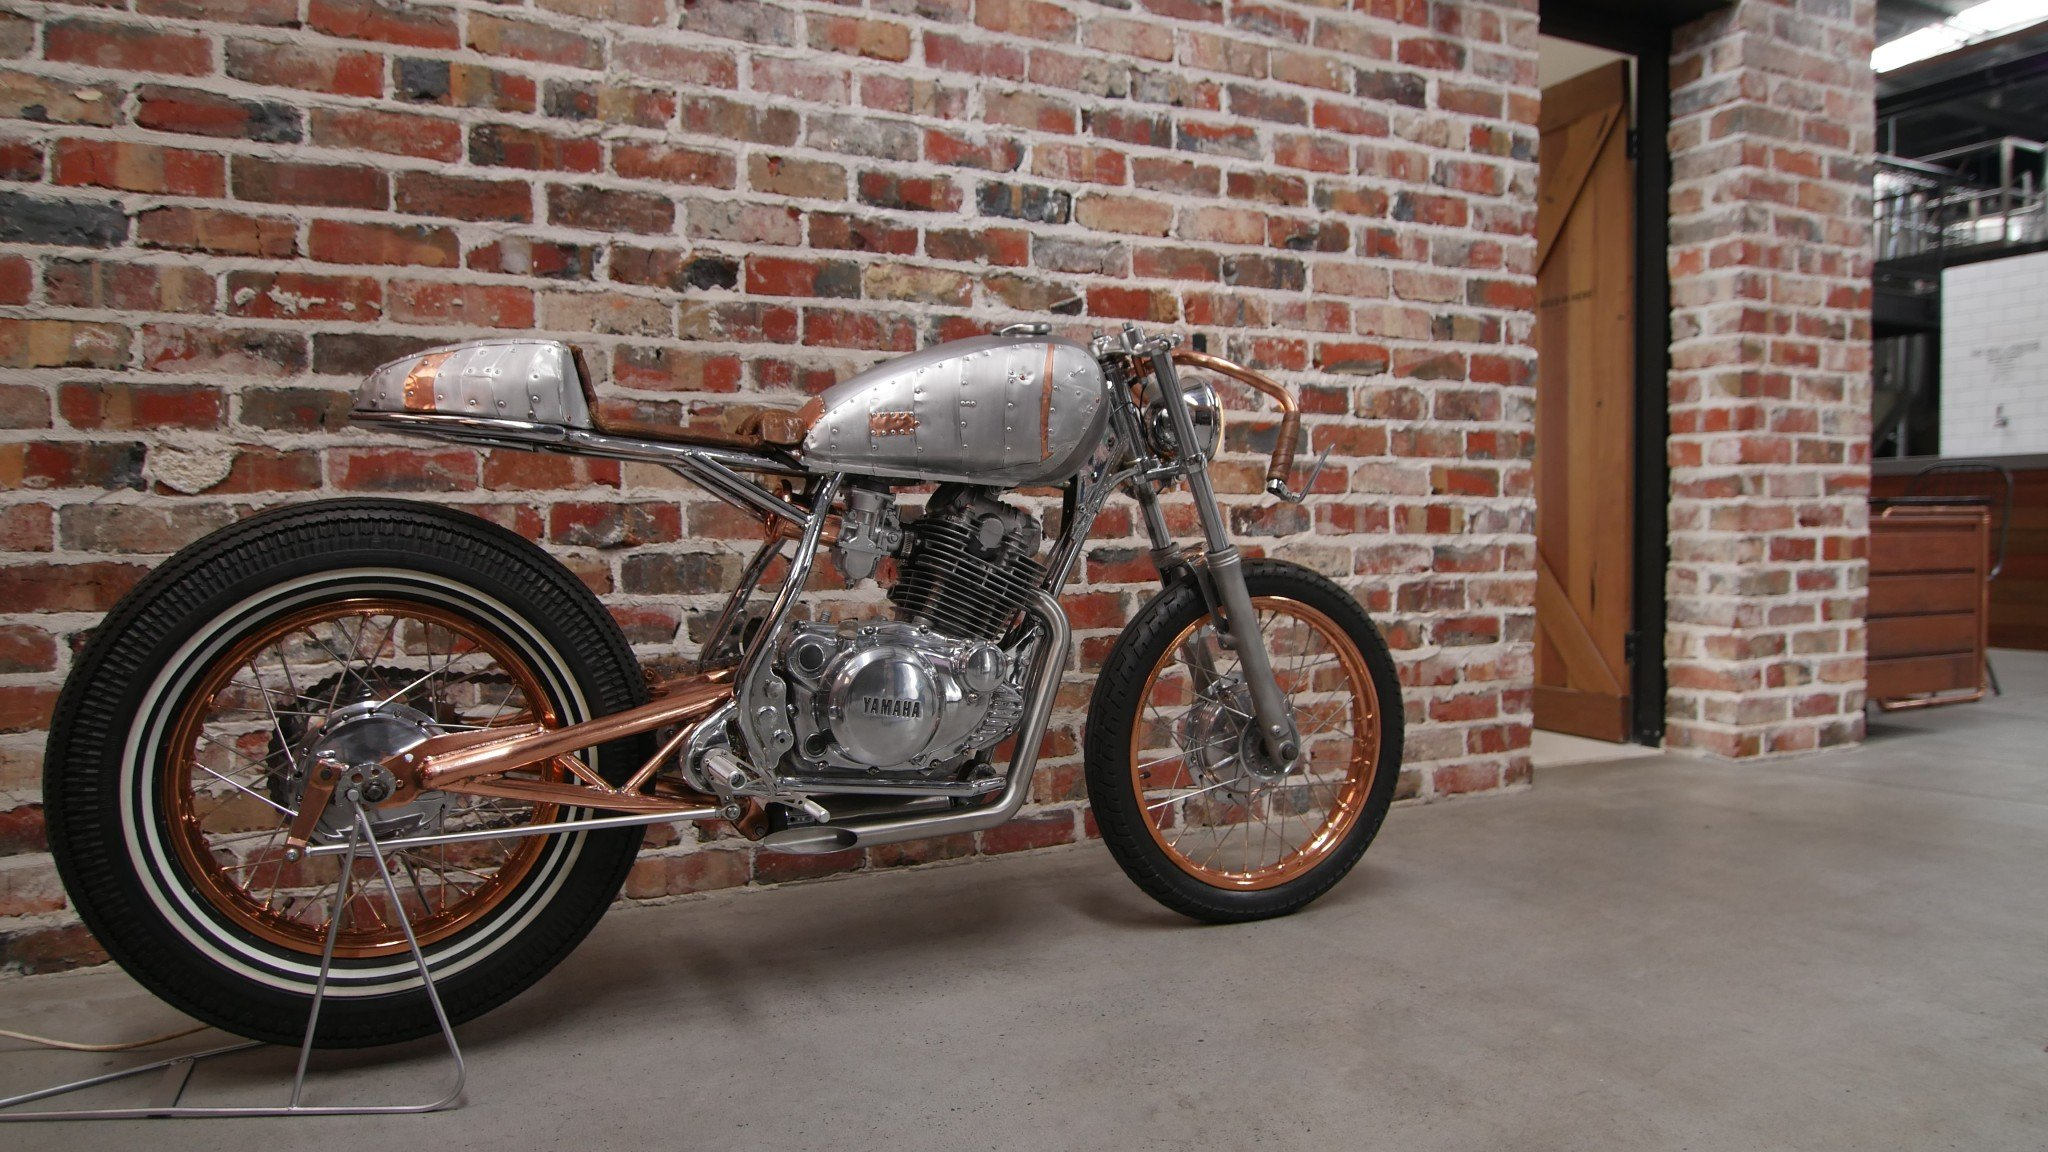 1980 yamaha sr250 custom cafe racer- hand built on the gold coast